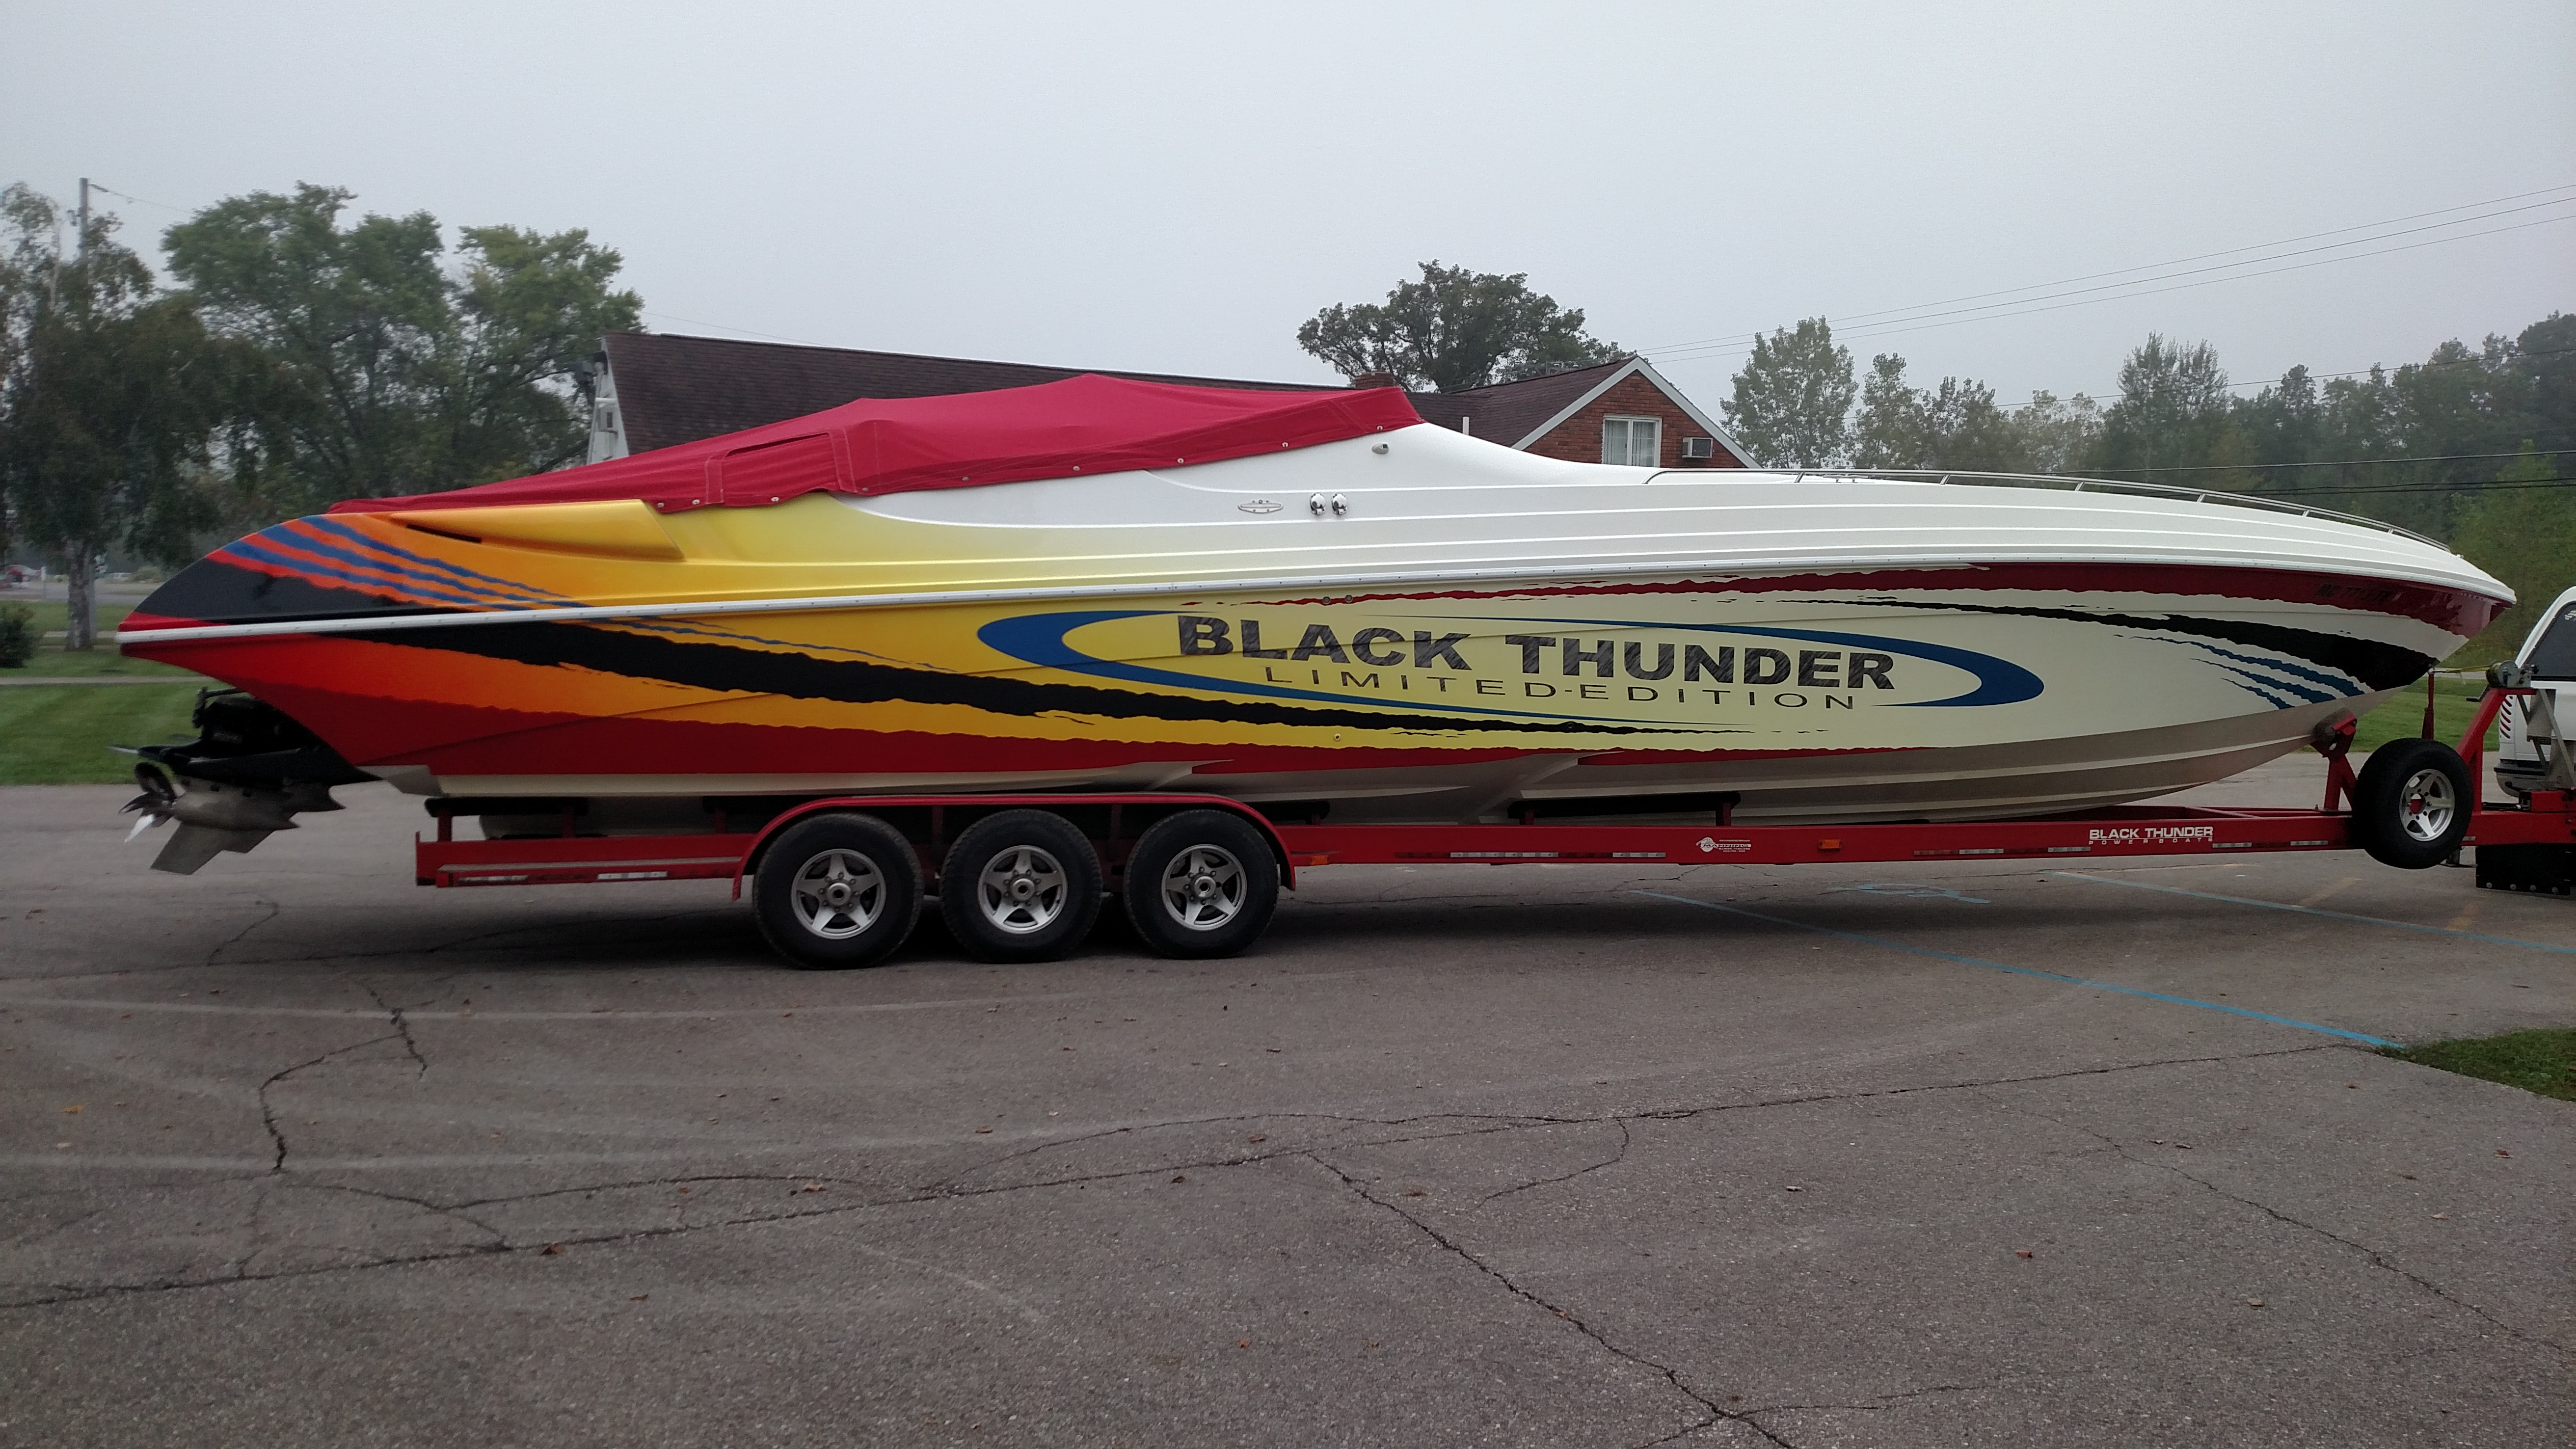 Thanks to modifications from BBLADES, this 46-foot Black Thunder has greater high-speed stability.